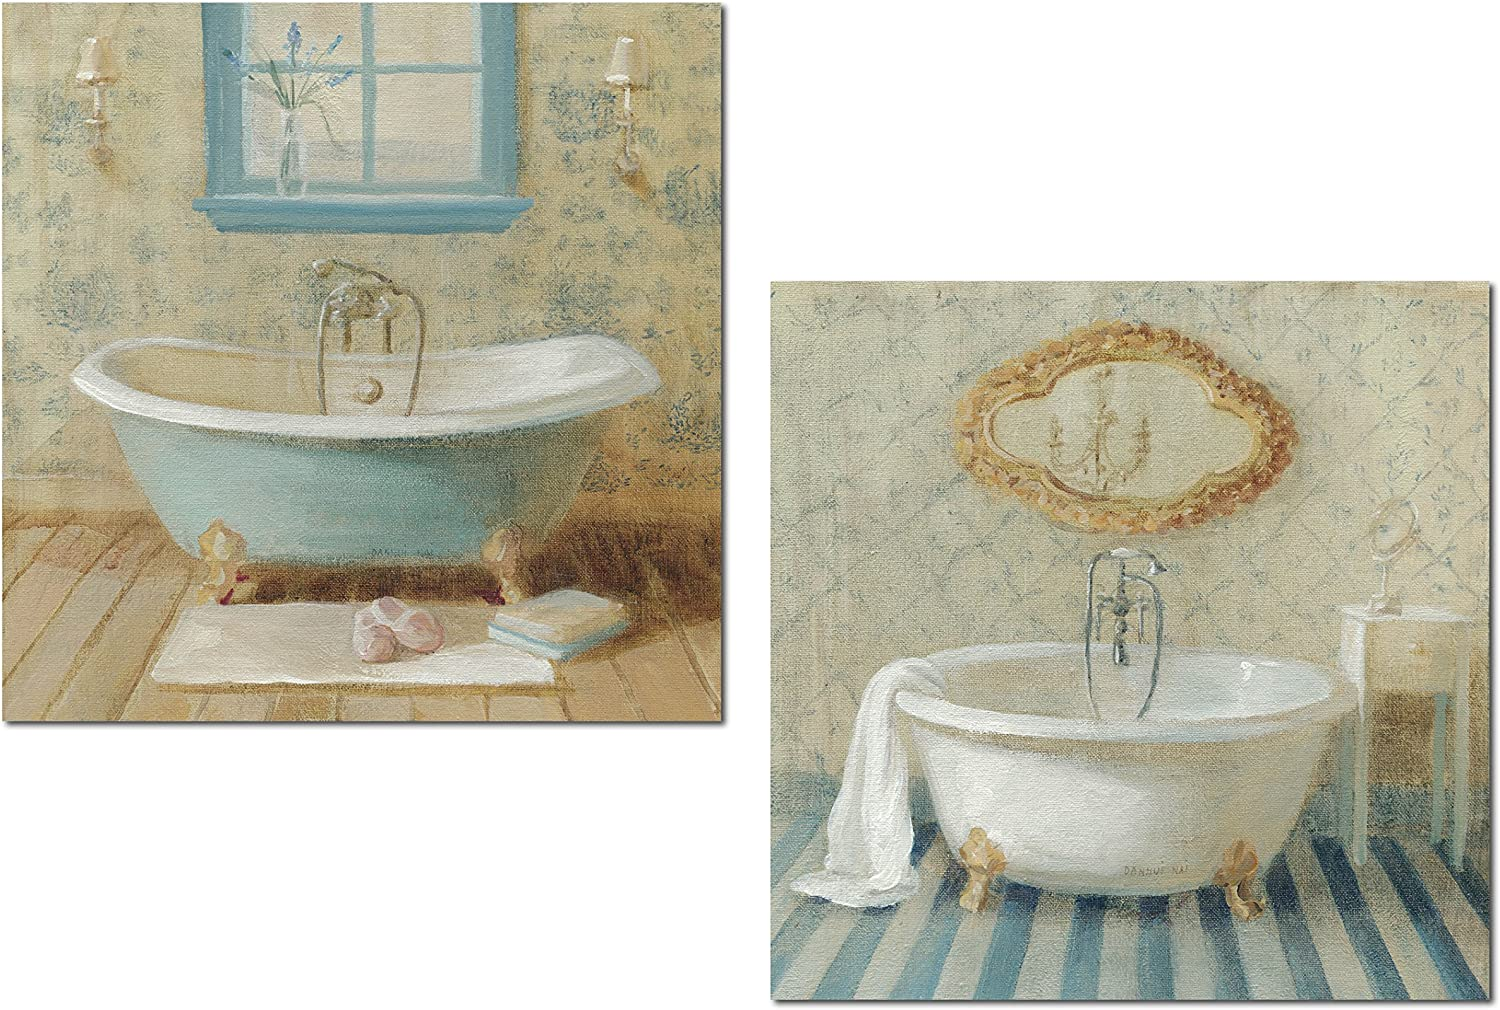 Lovely Light Blue and Cream Clawfoot Bathtub Victorian Set by Danhui Nai; Bathroom Decor; Two 12x12in Unframed Paper Posters